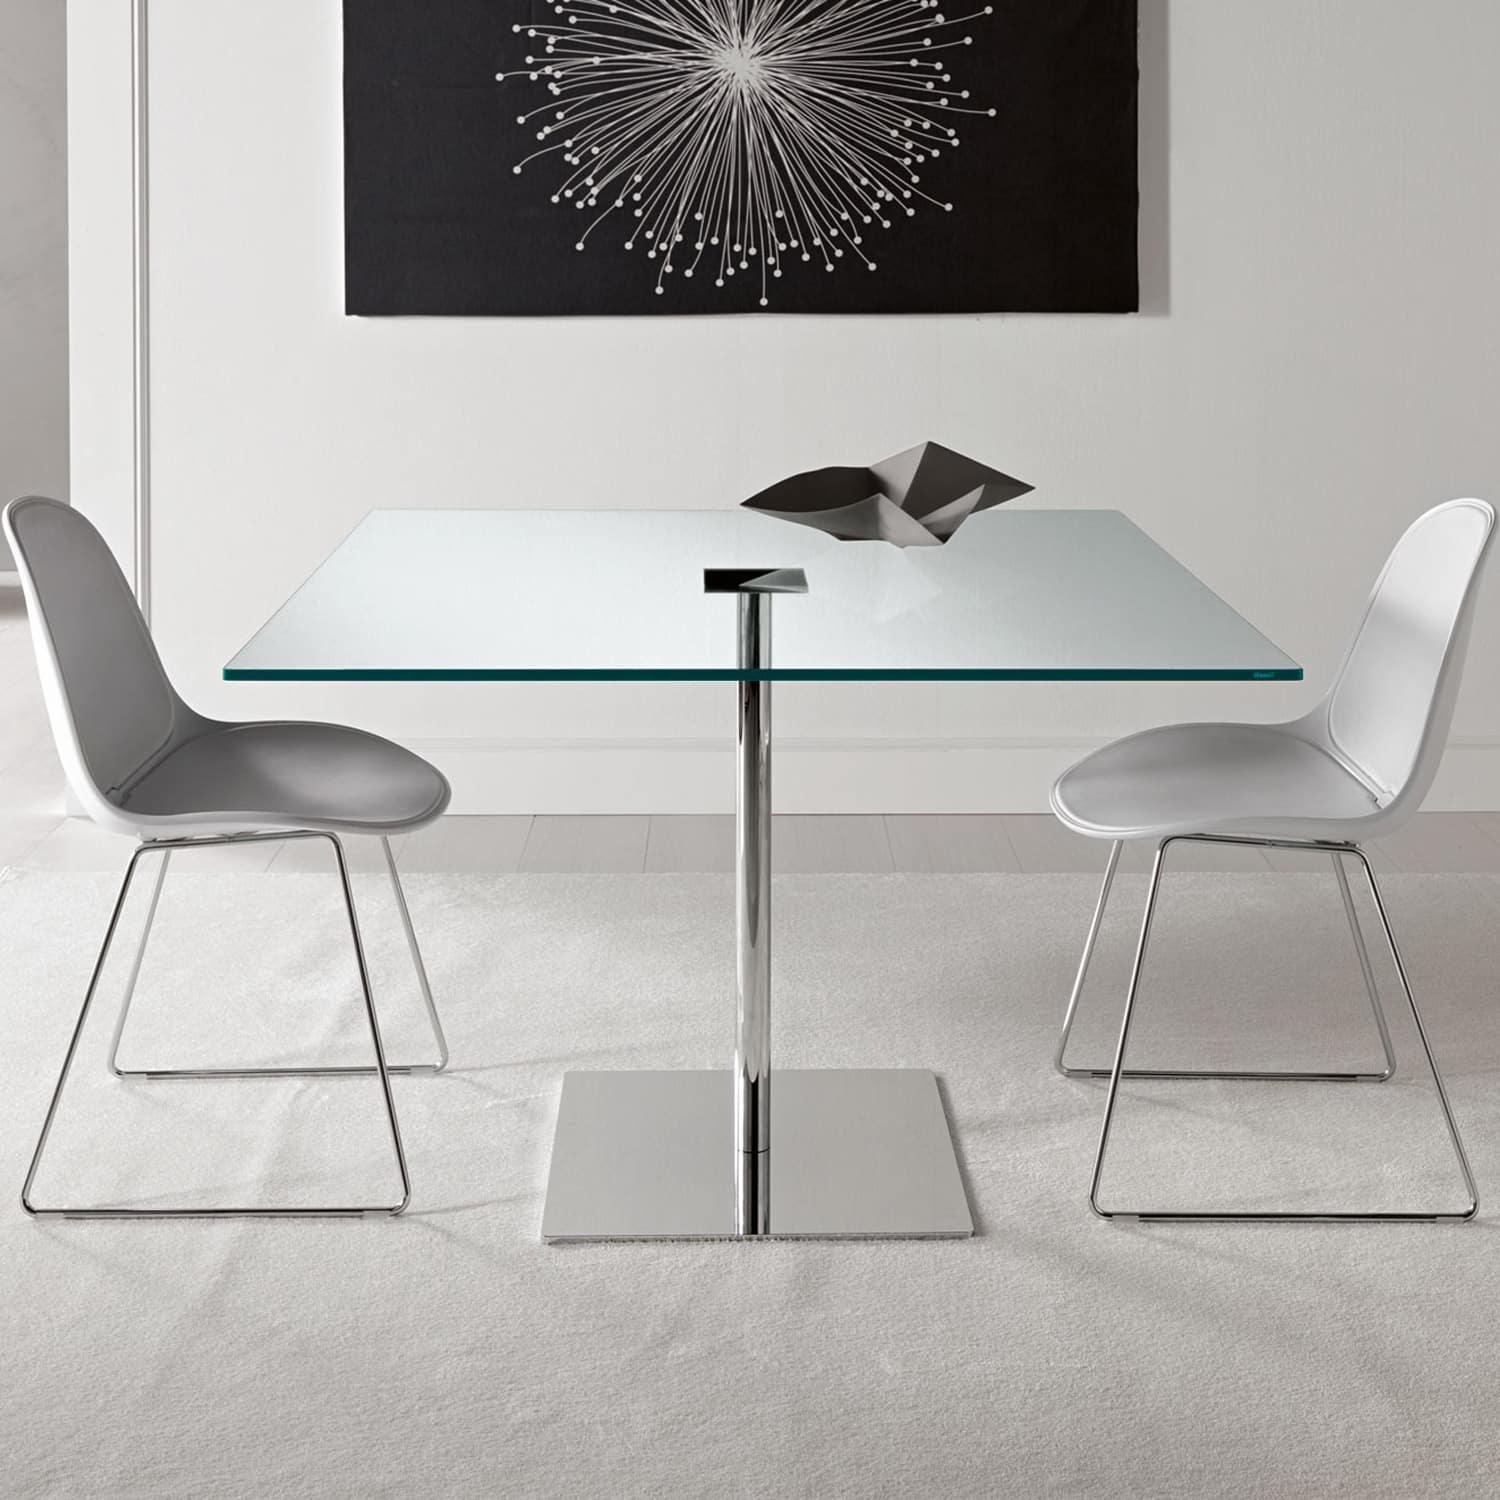 Farniente Square Glass and Metal Dining Table by Tonelli Klarity